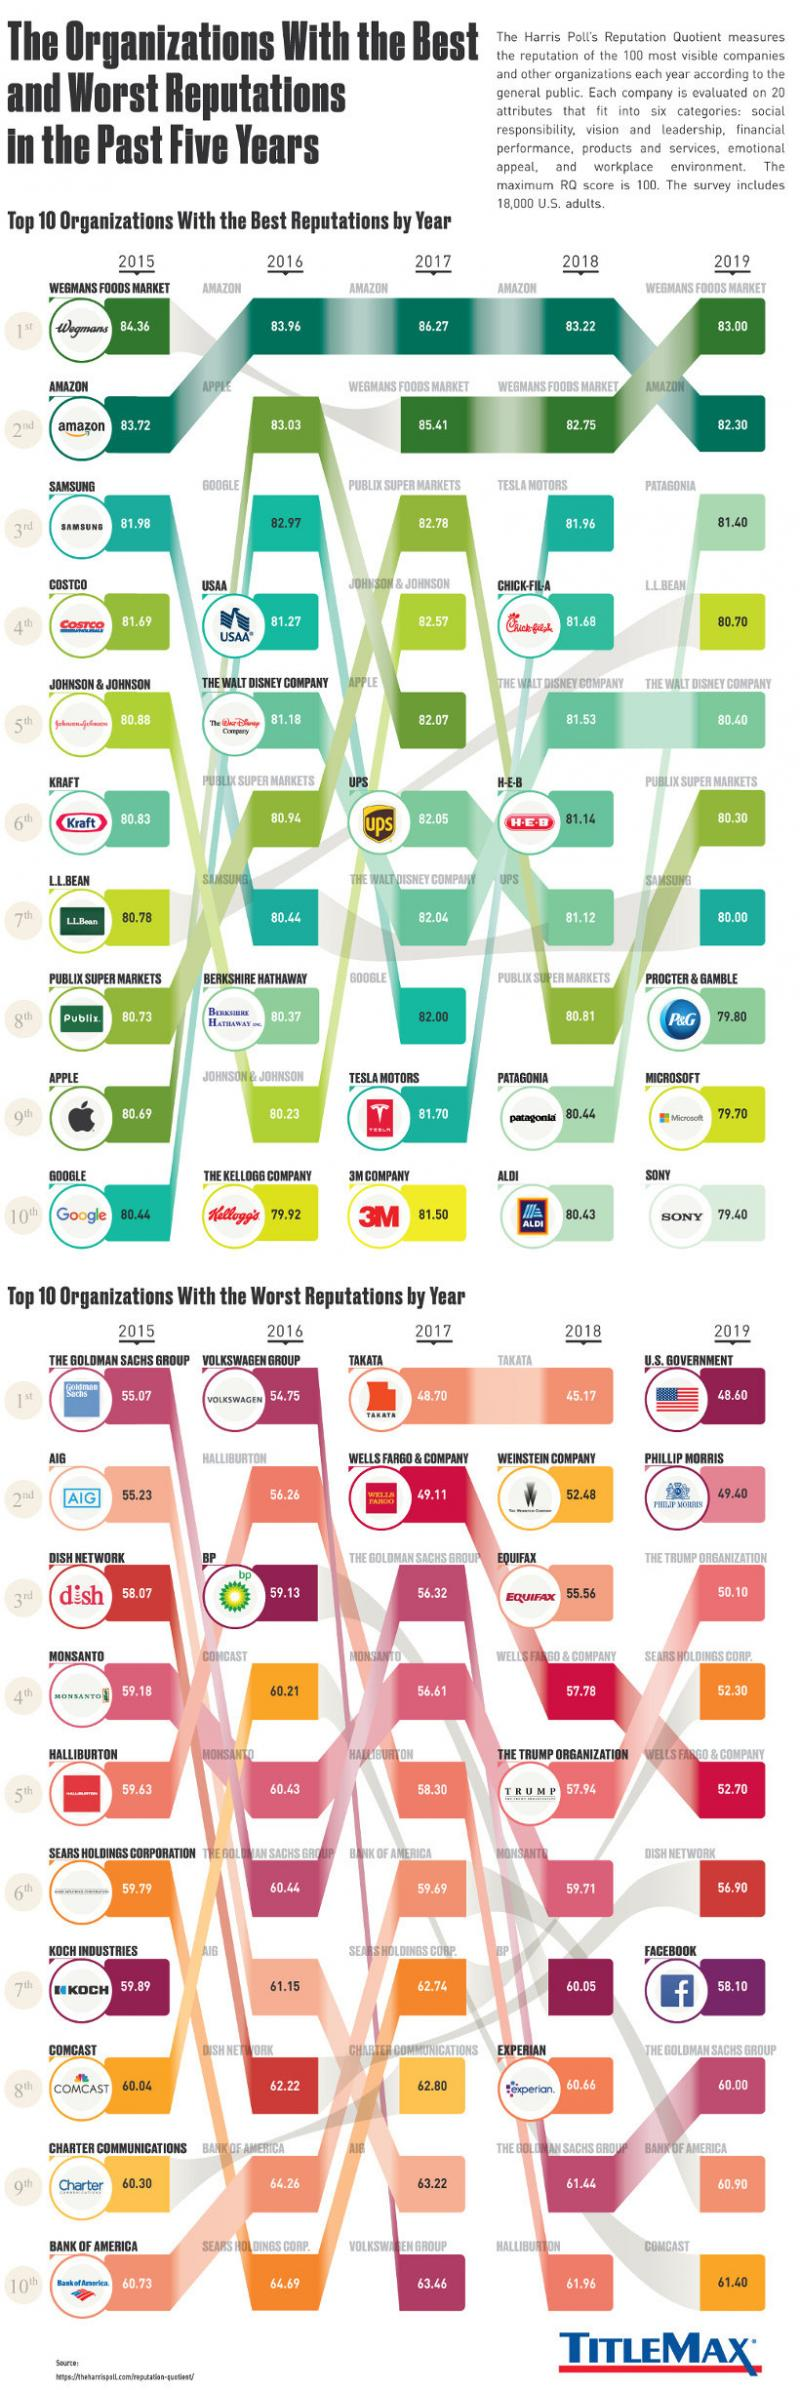 Ranked: The 10 Organizations With the Best (and Worst) Reputations #Infographic